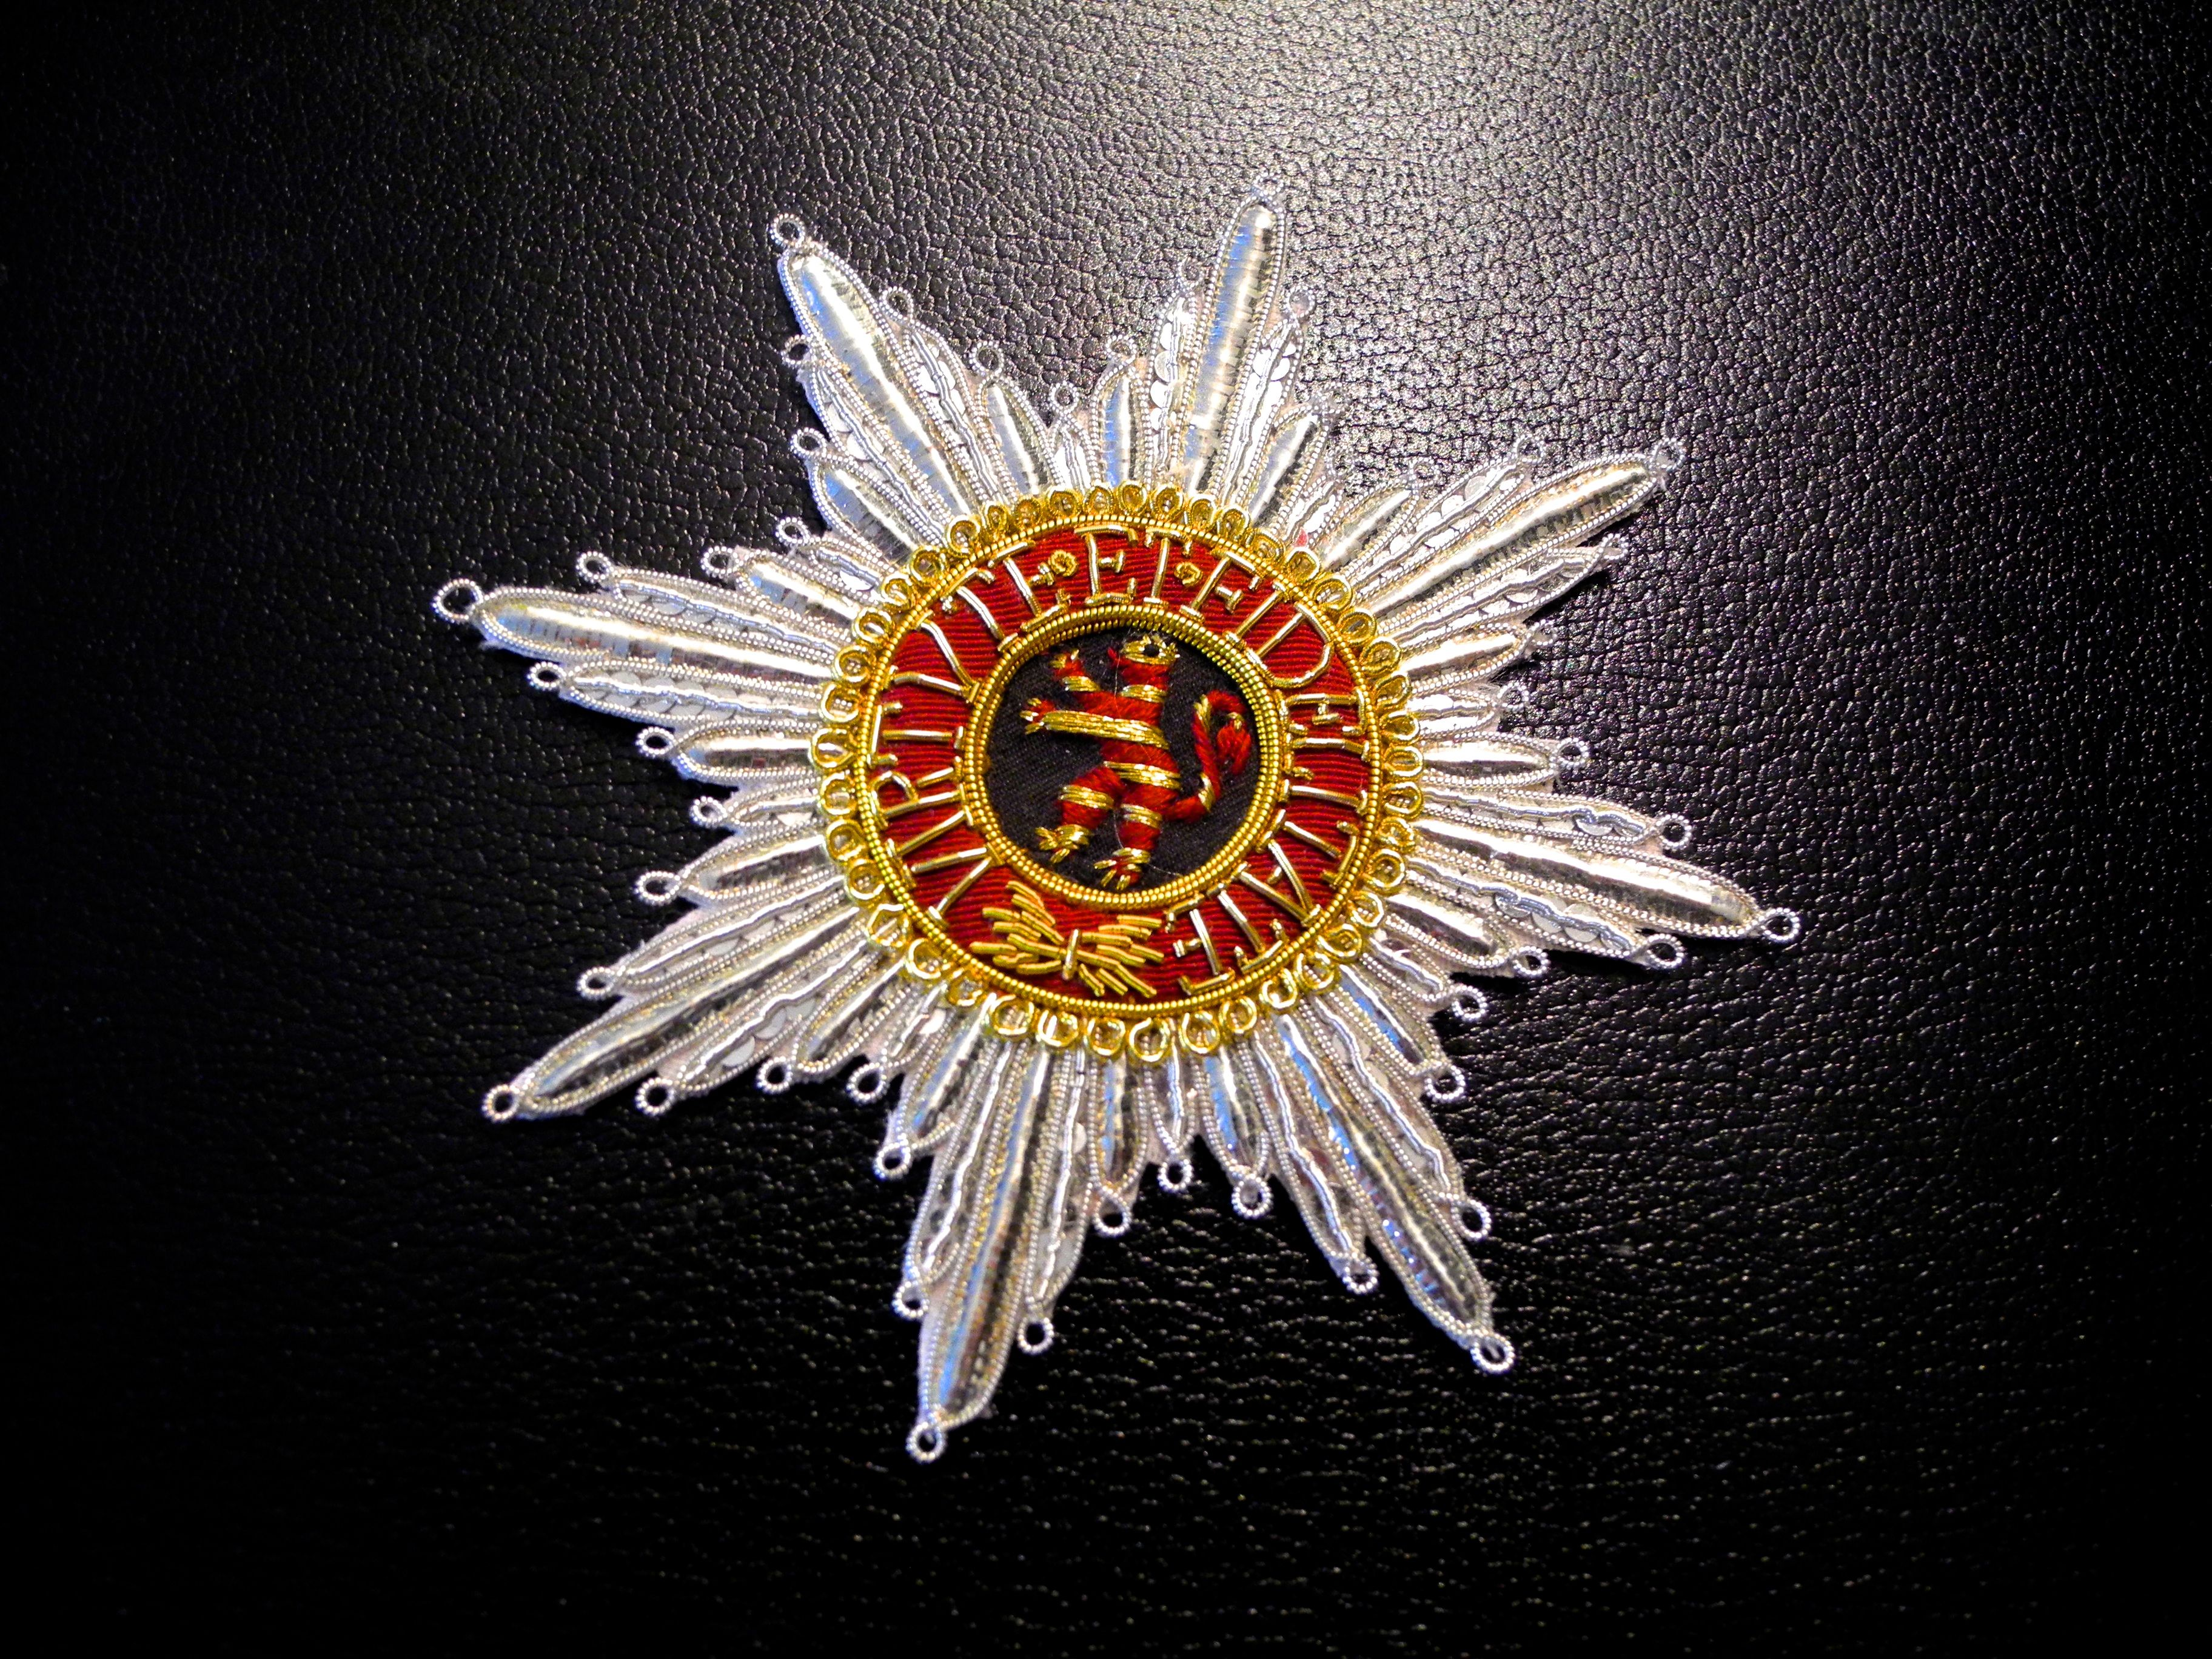 Electorate Hesse-Kassel, Order of the Golden Lion, embroidered breast star